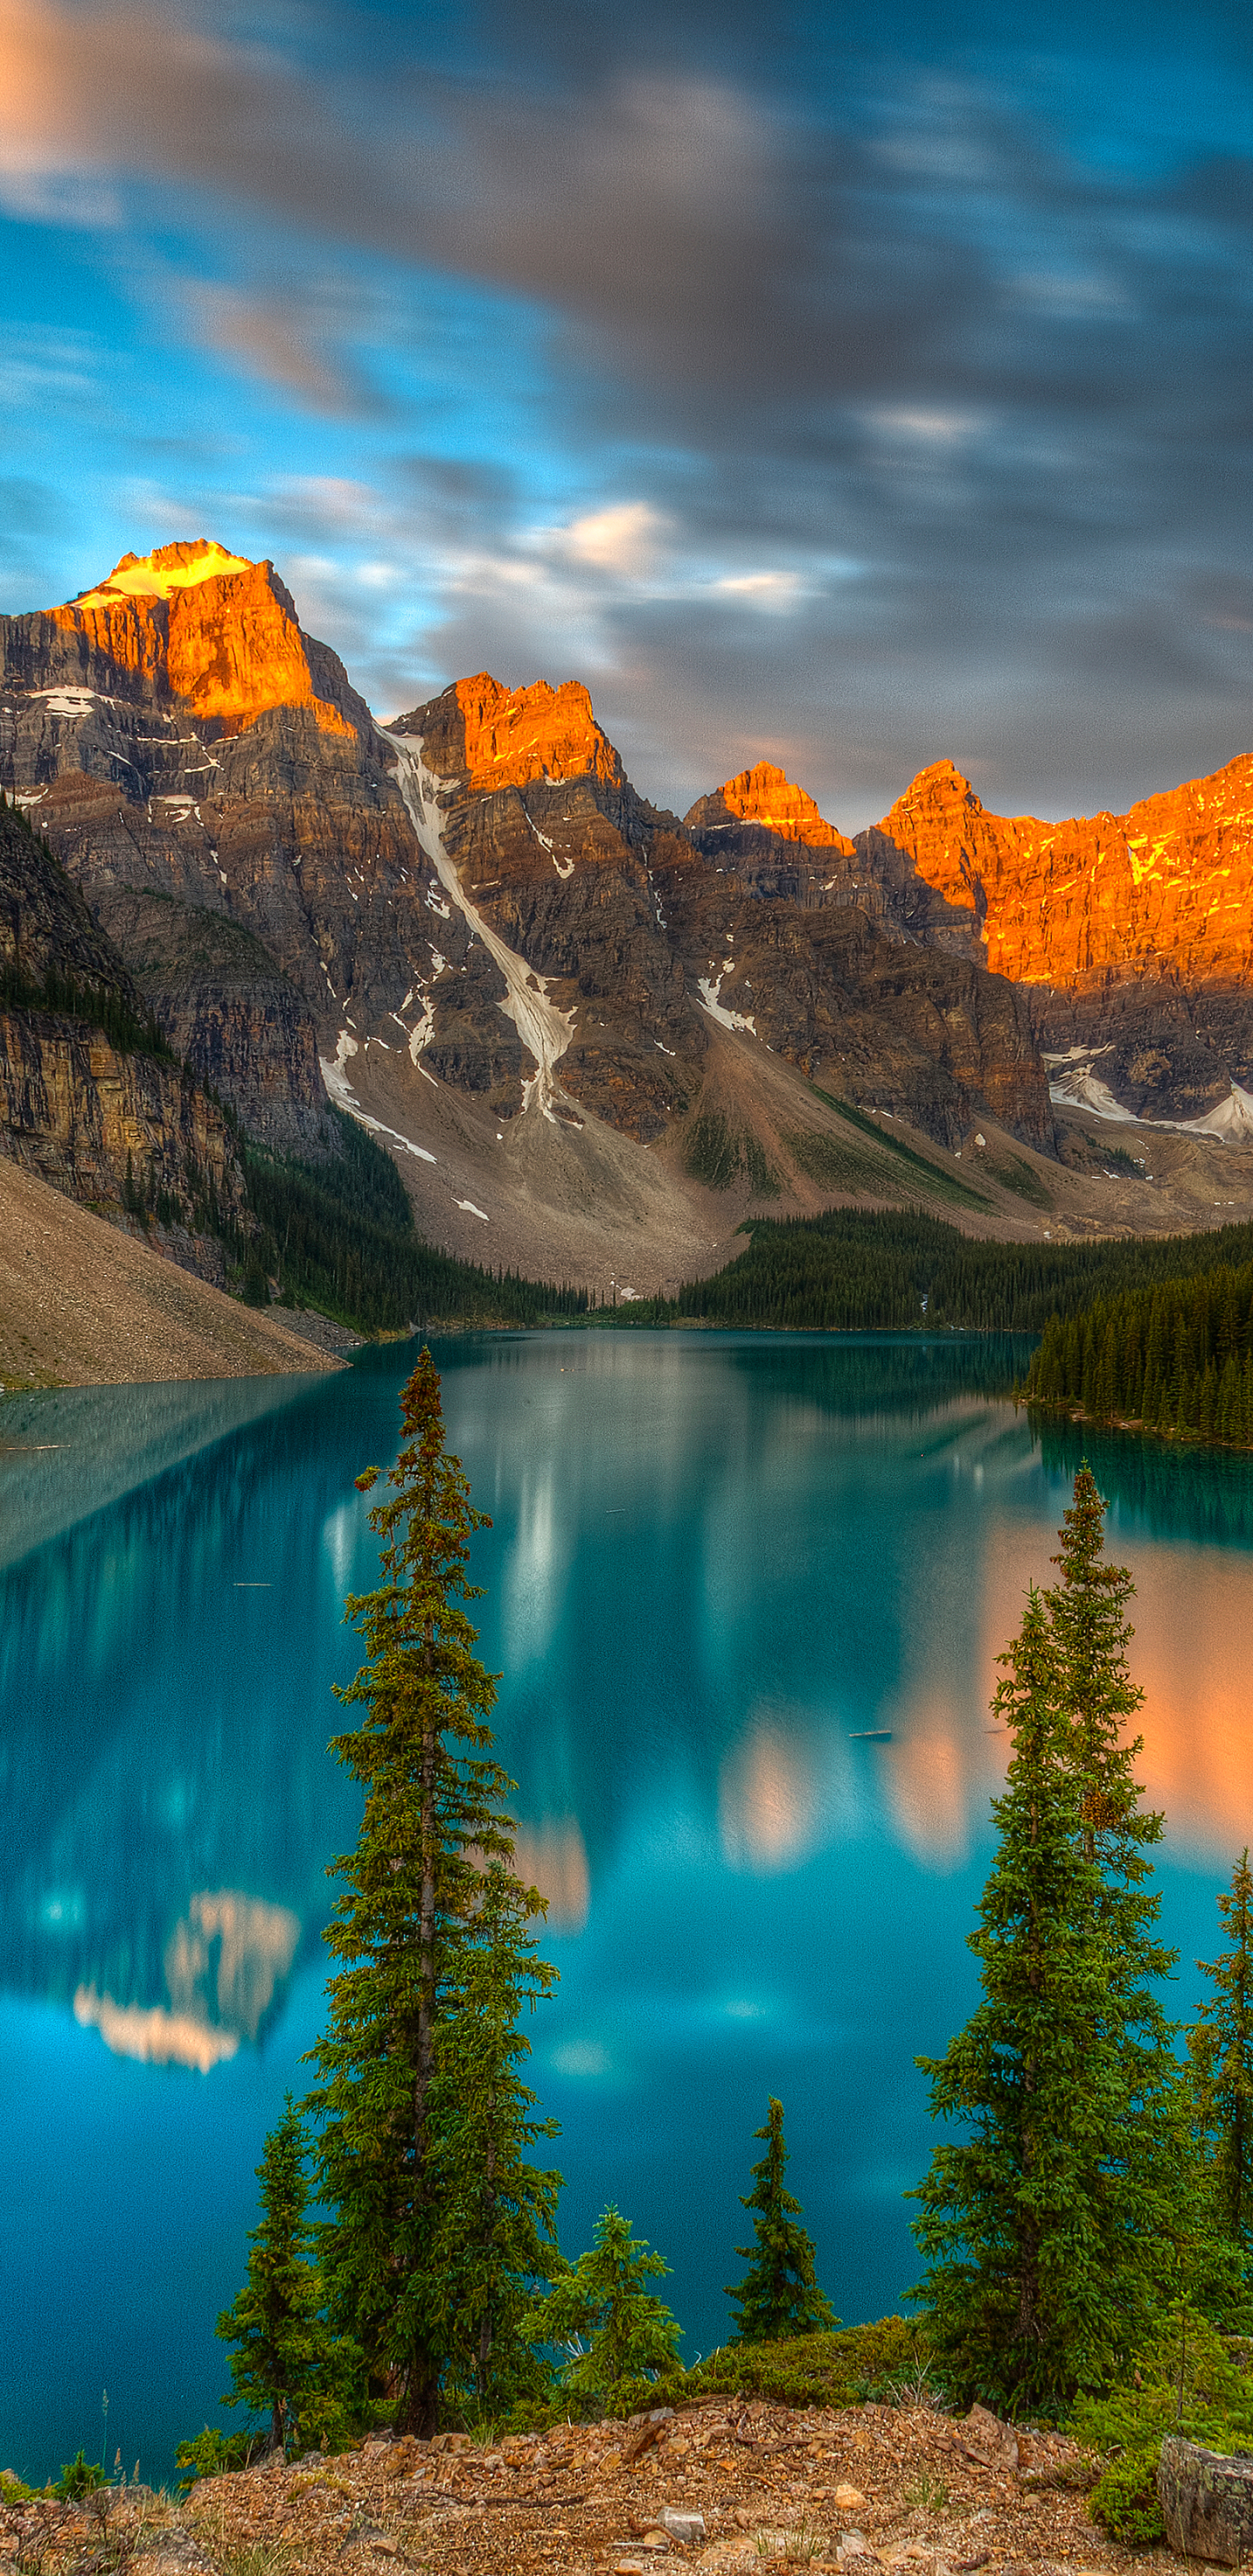 Earth/Moraine Lake (1440x2960